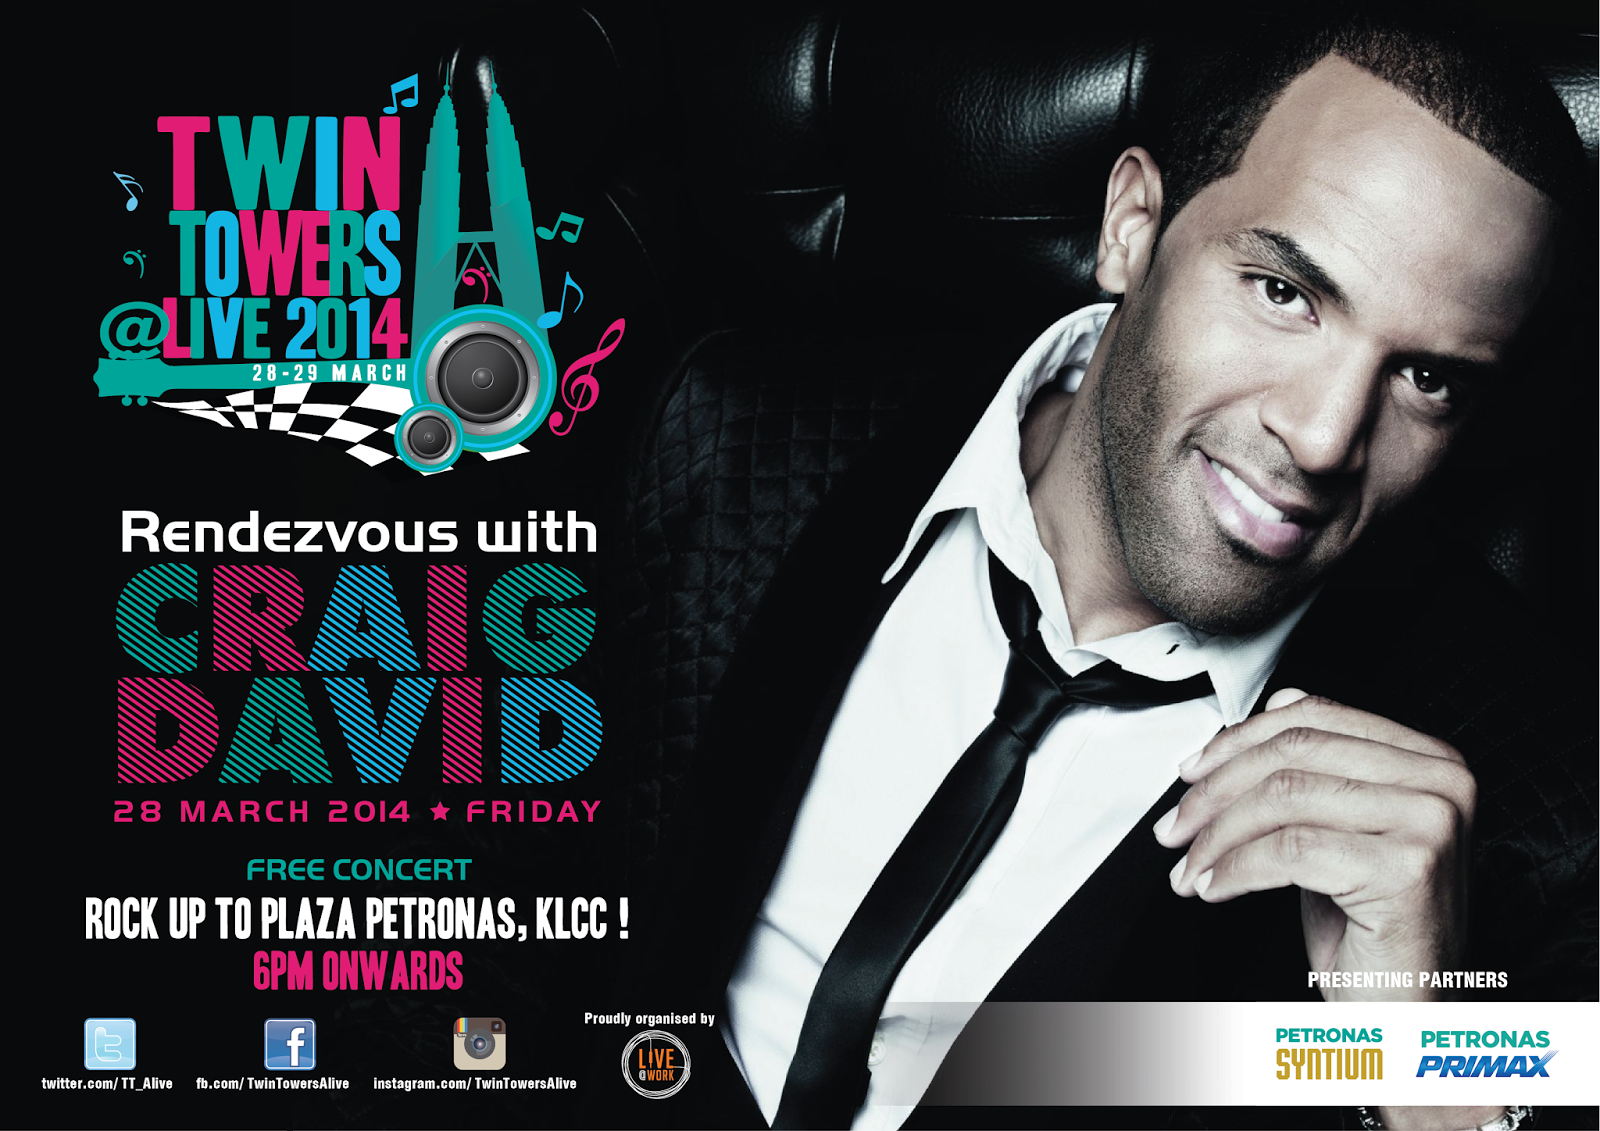 Craig David performing at TWIN TOWERS @LIVE 2014